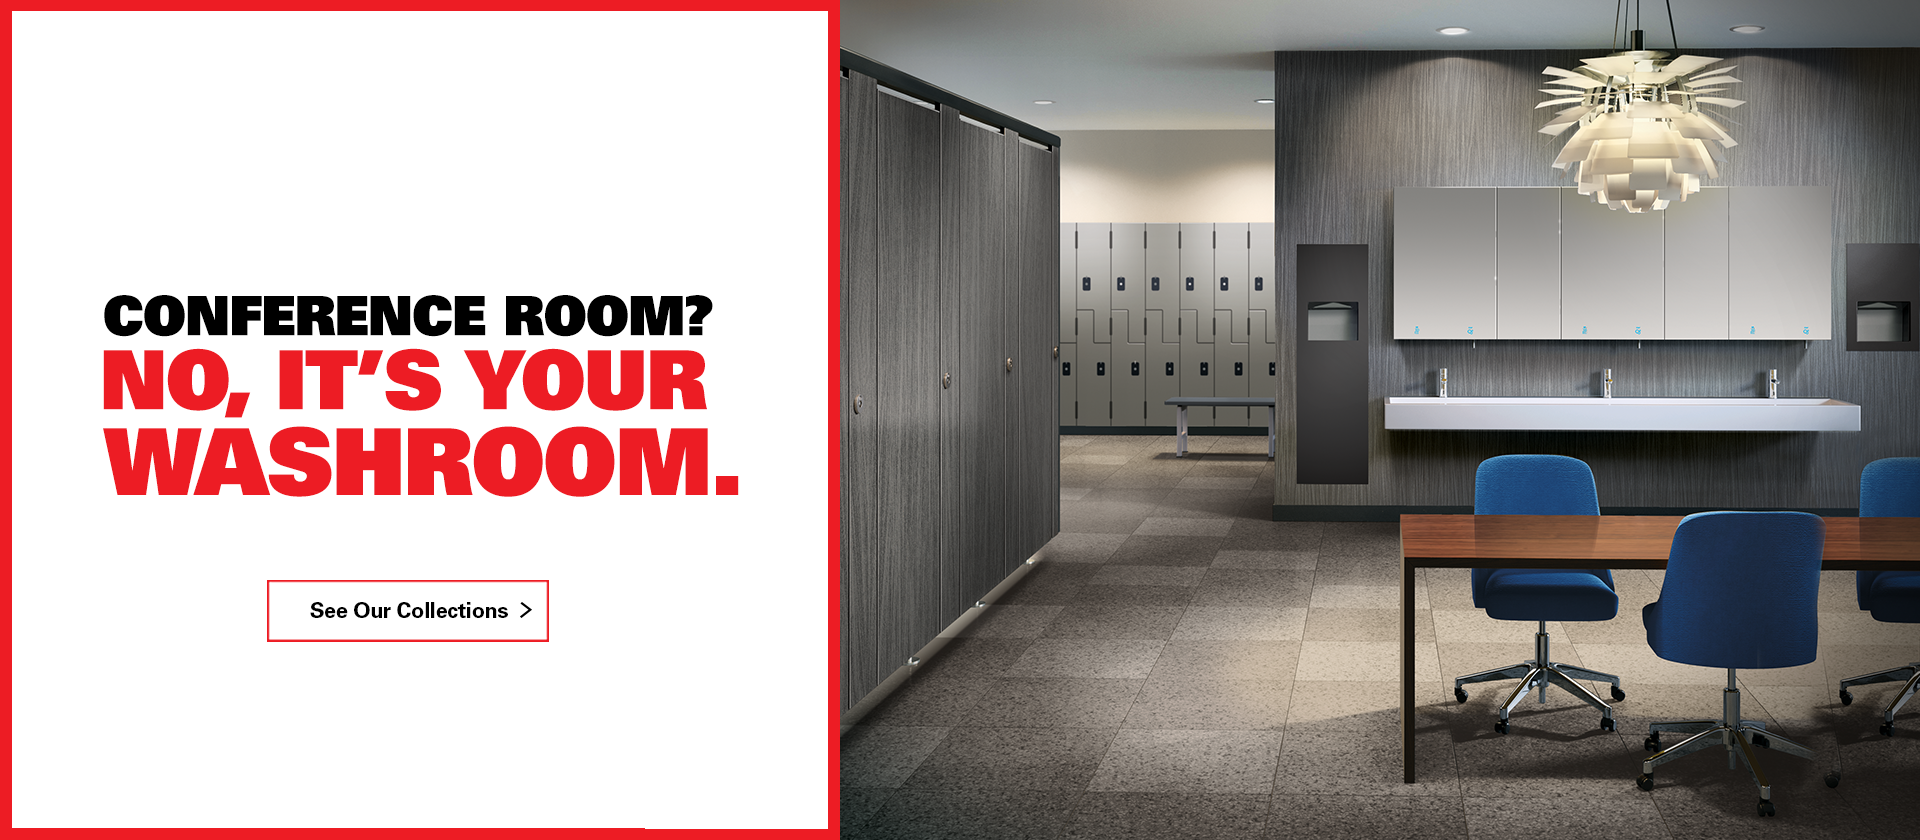 Conference Room? No, It's Your Washroom.